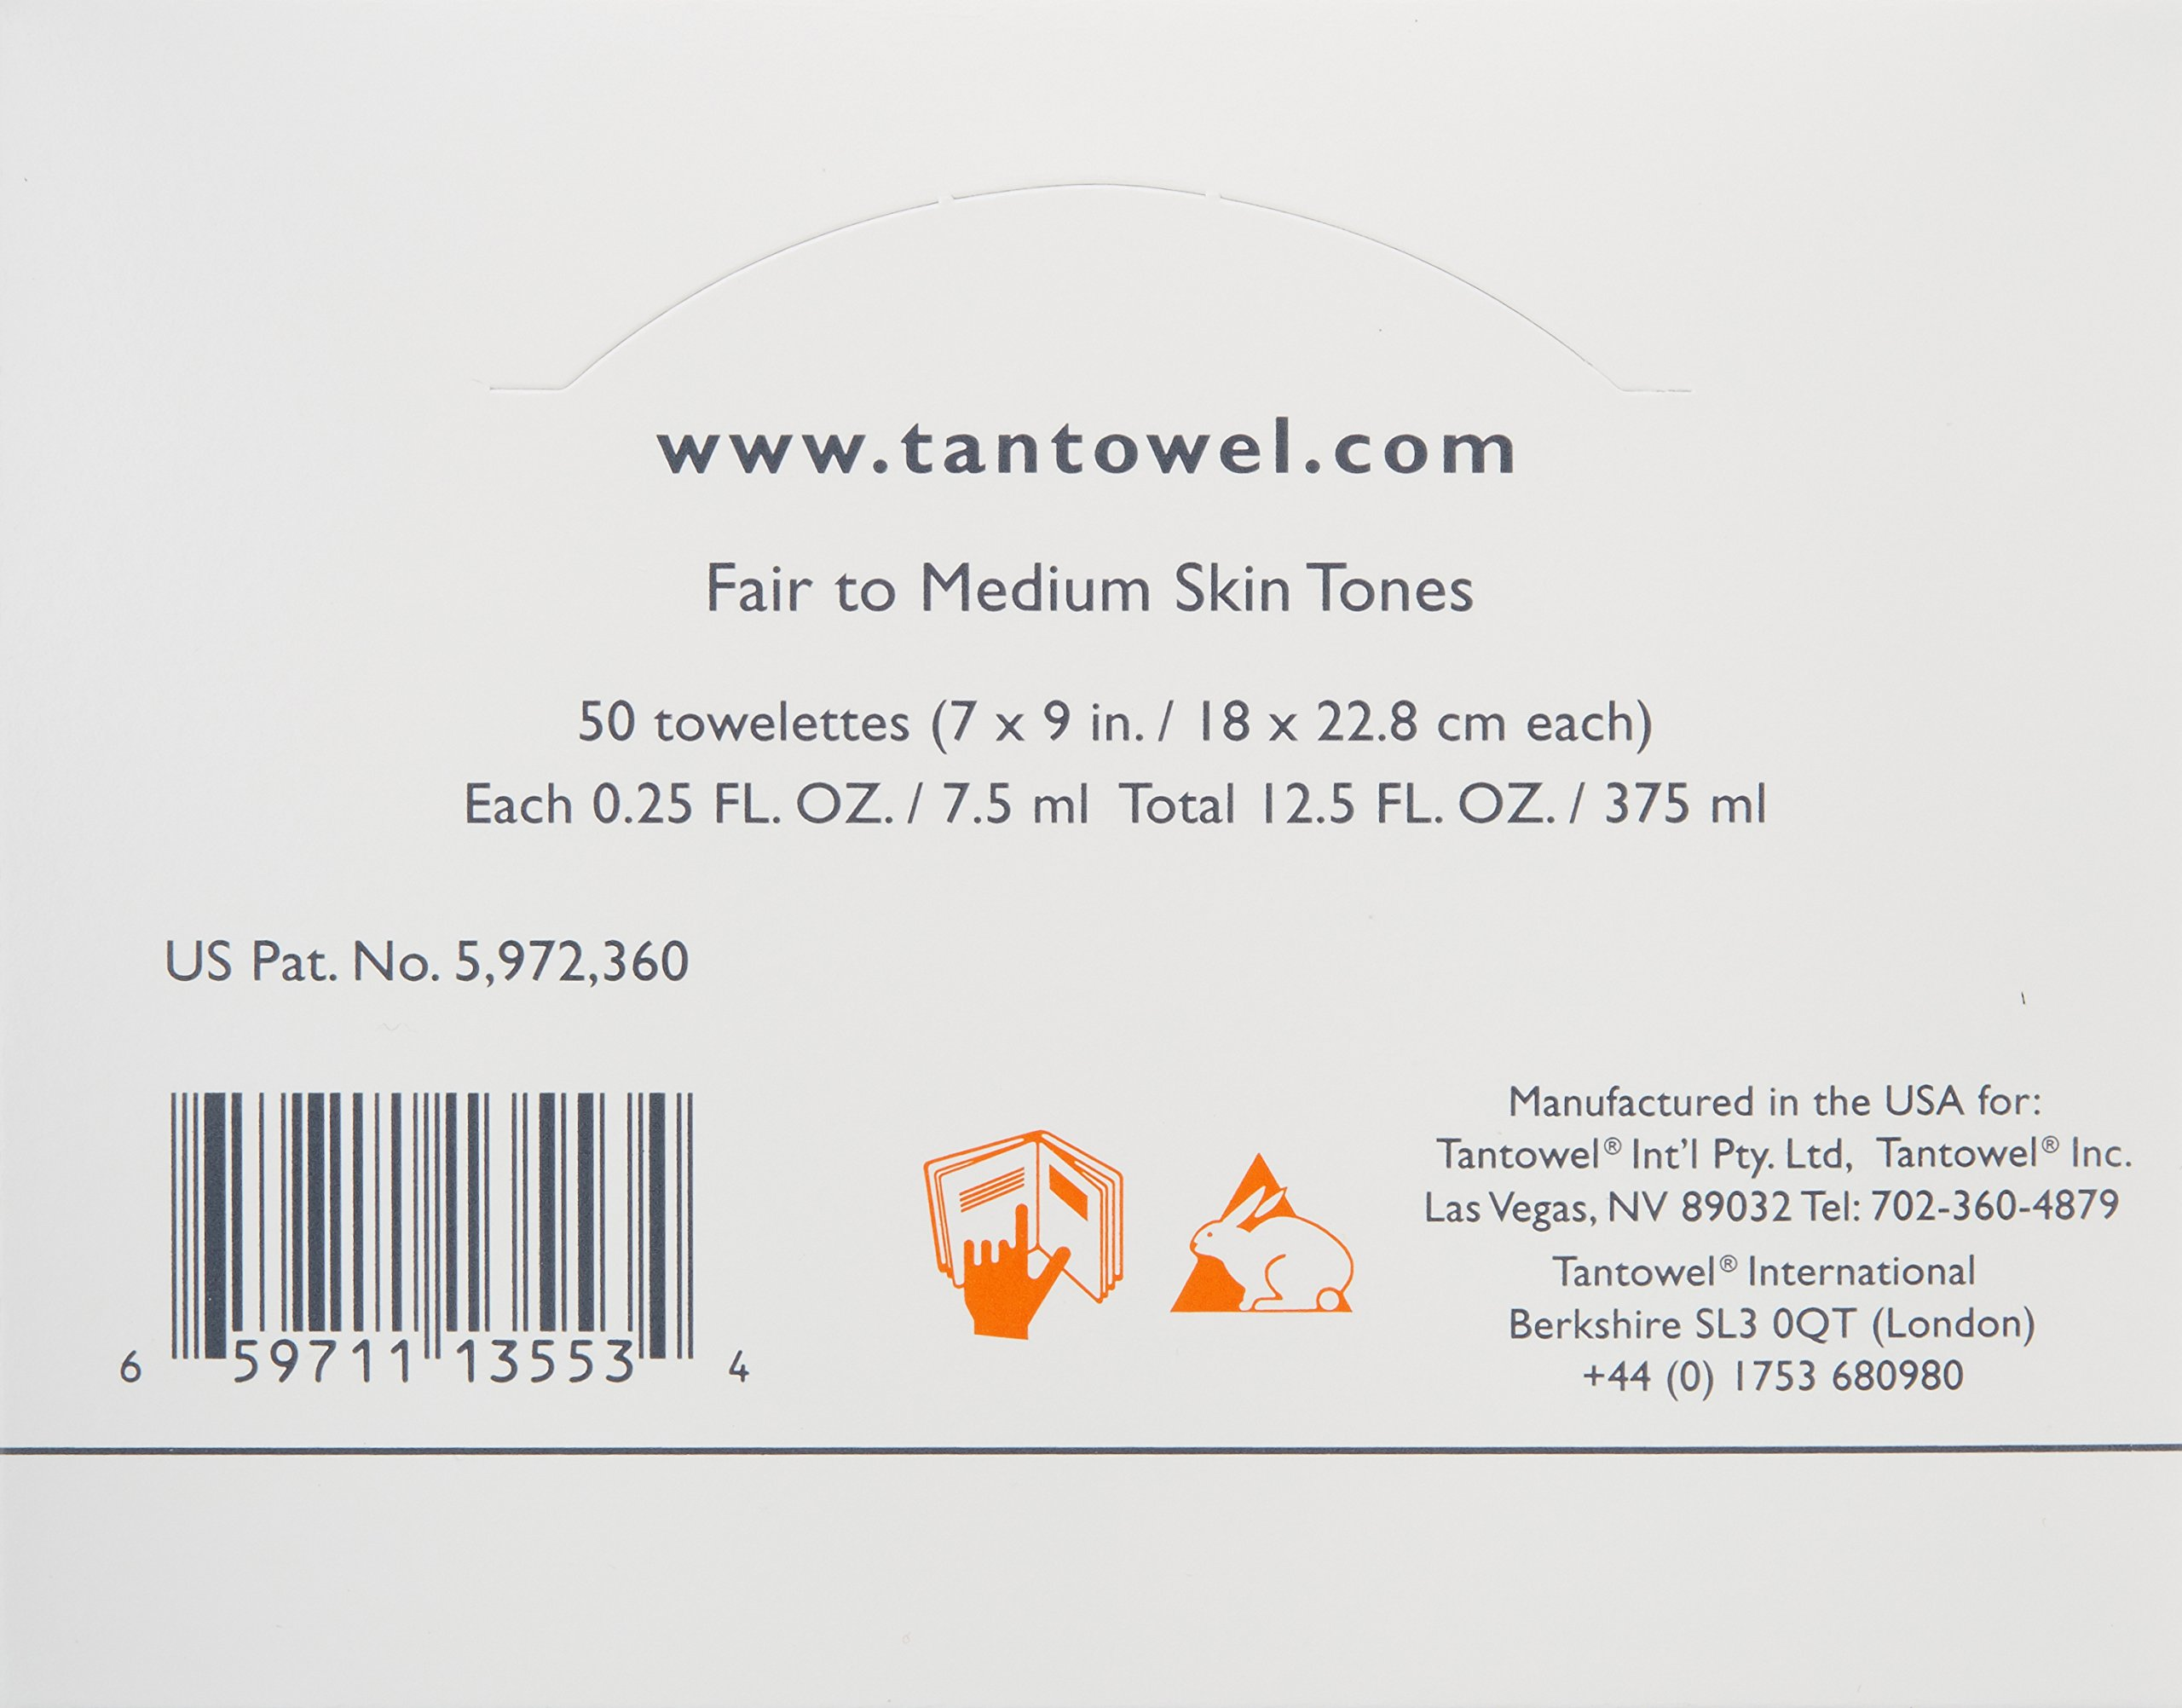 Tan Towel Self Tan Towelette Classic  50 Count by Tan Towel (Image #2)